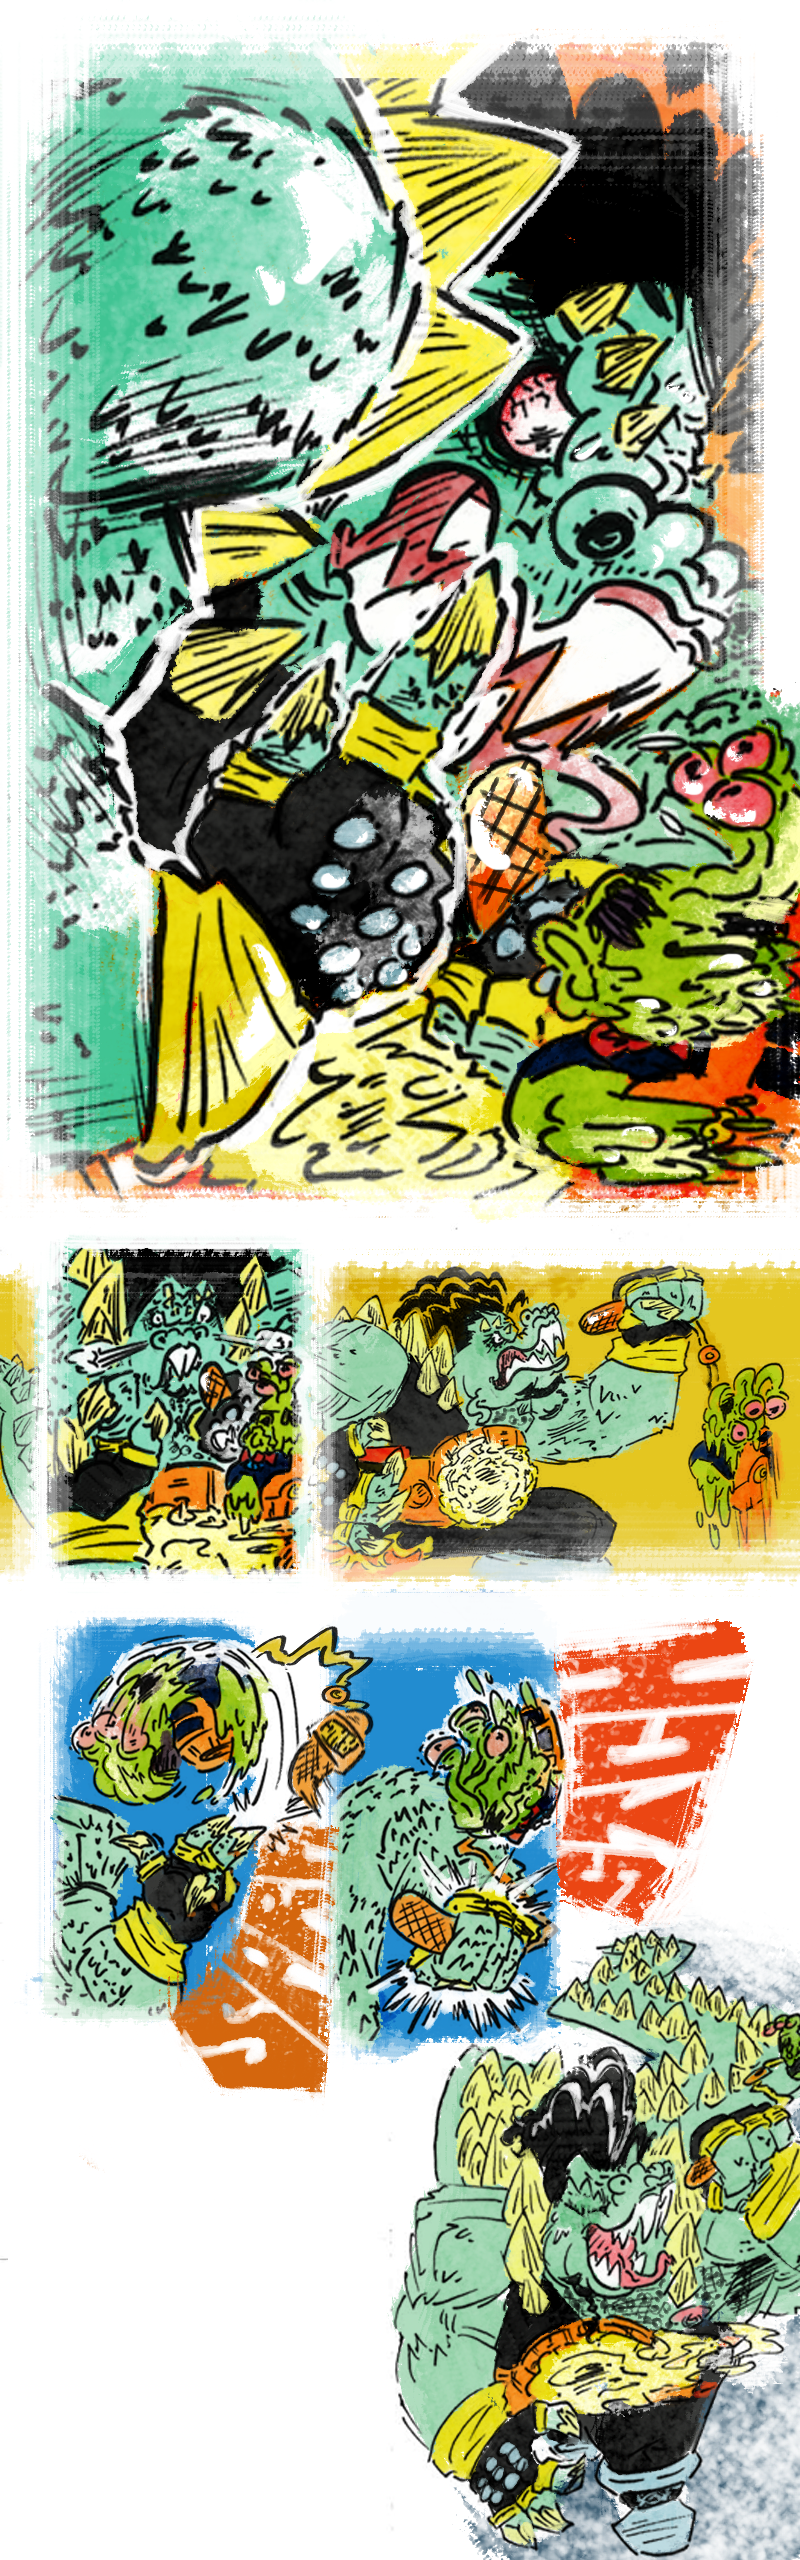 HAMLET-MANIA, ISSUE 3: PAGE 3